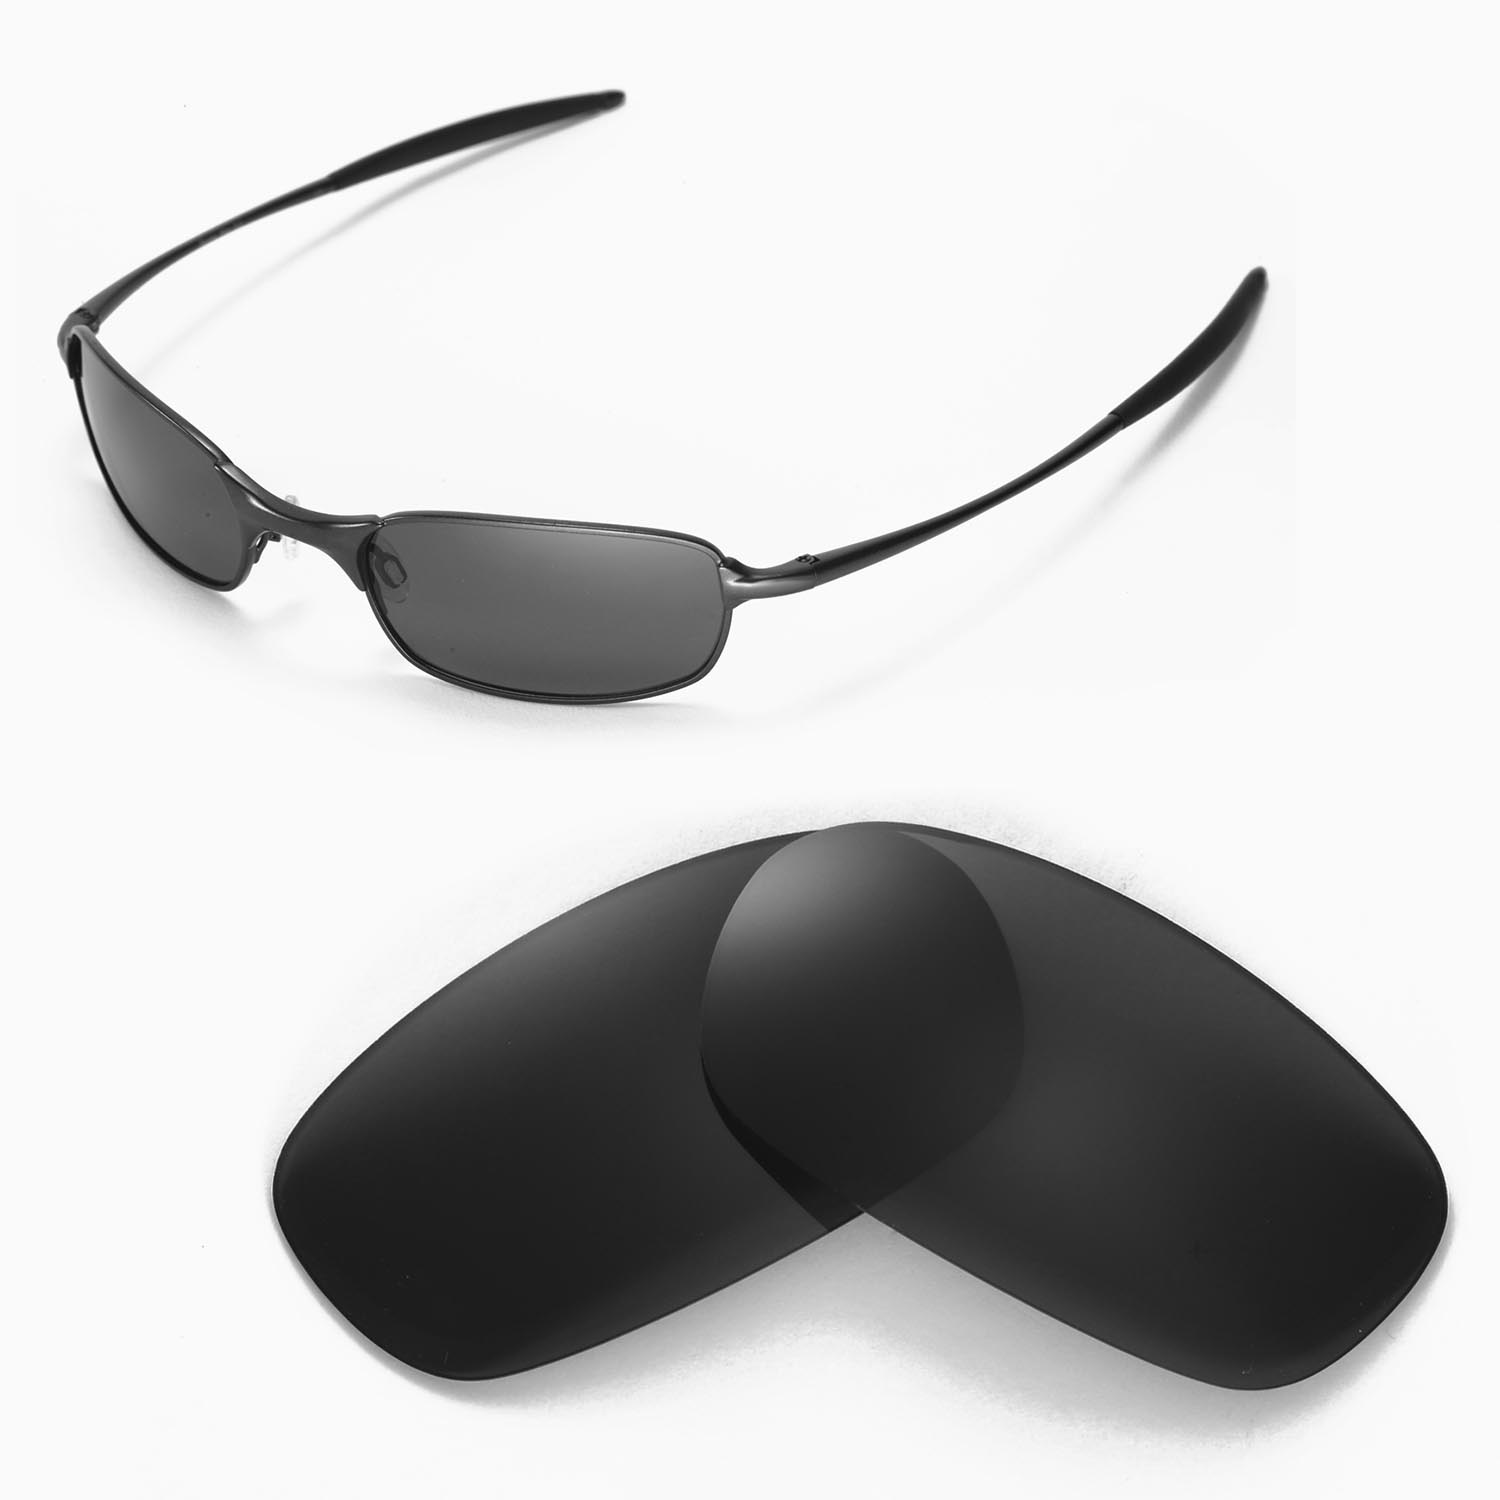 e8ddaa36b3 Details about New Walleva Polarized Black Replacement Lenses For Oakley  Square Wire 2.0